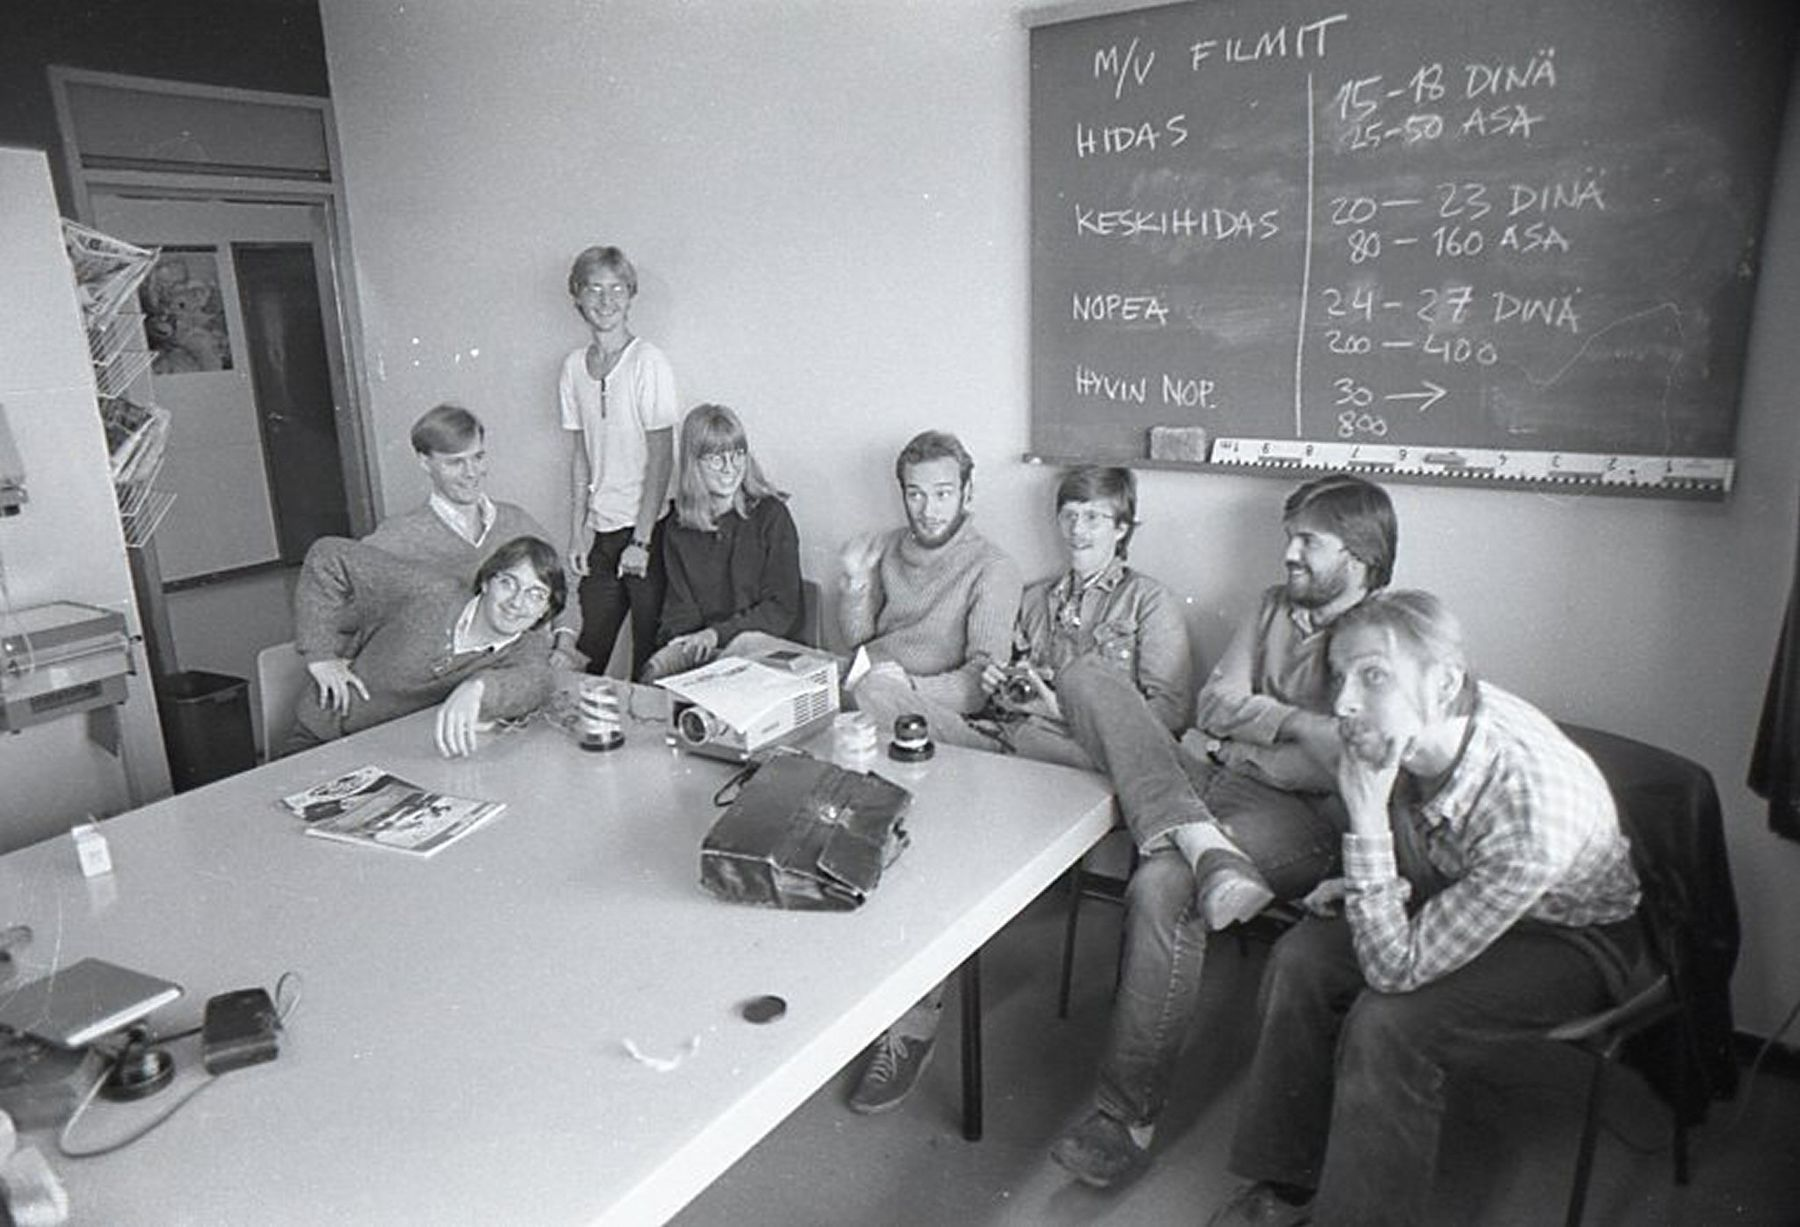 people posing at table in black and white